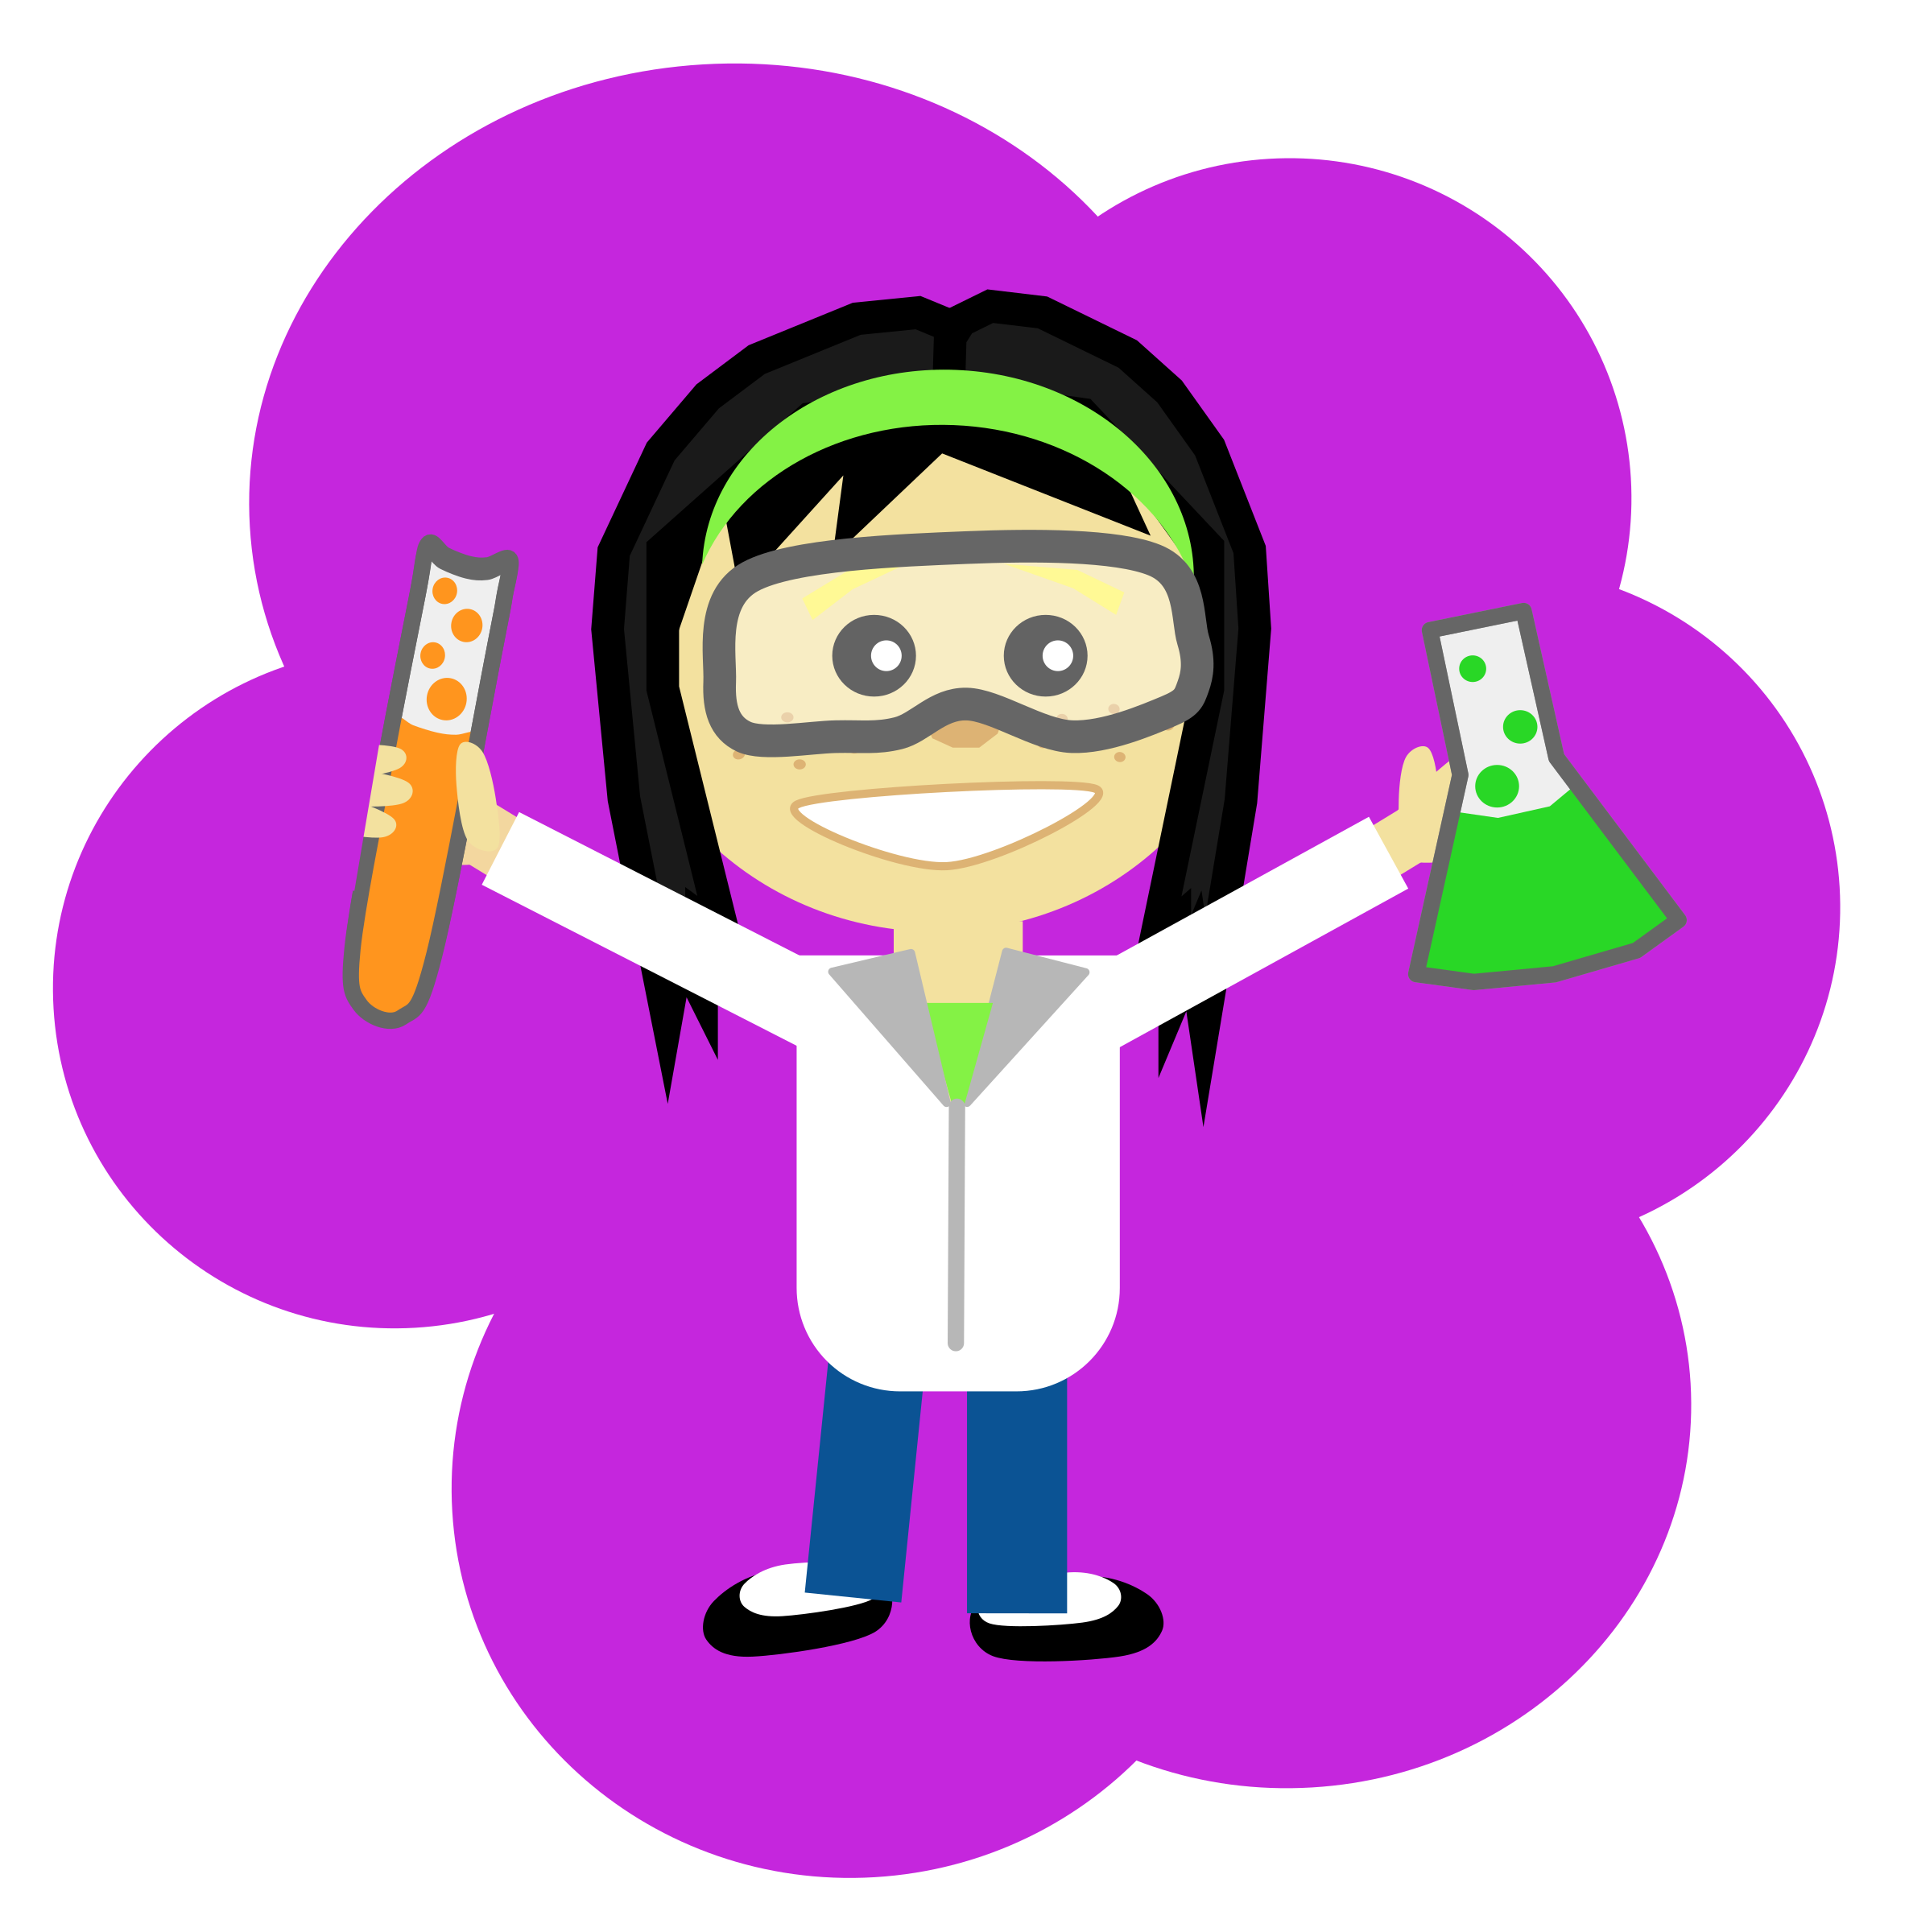 Scientist clipart food scientist. Science girl with black